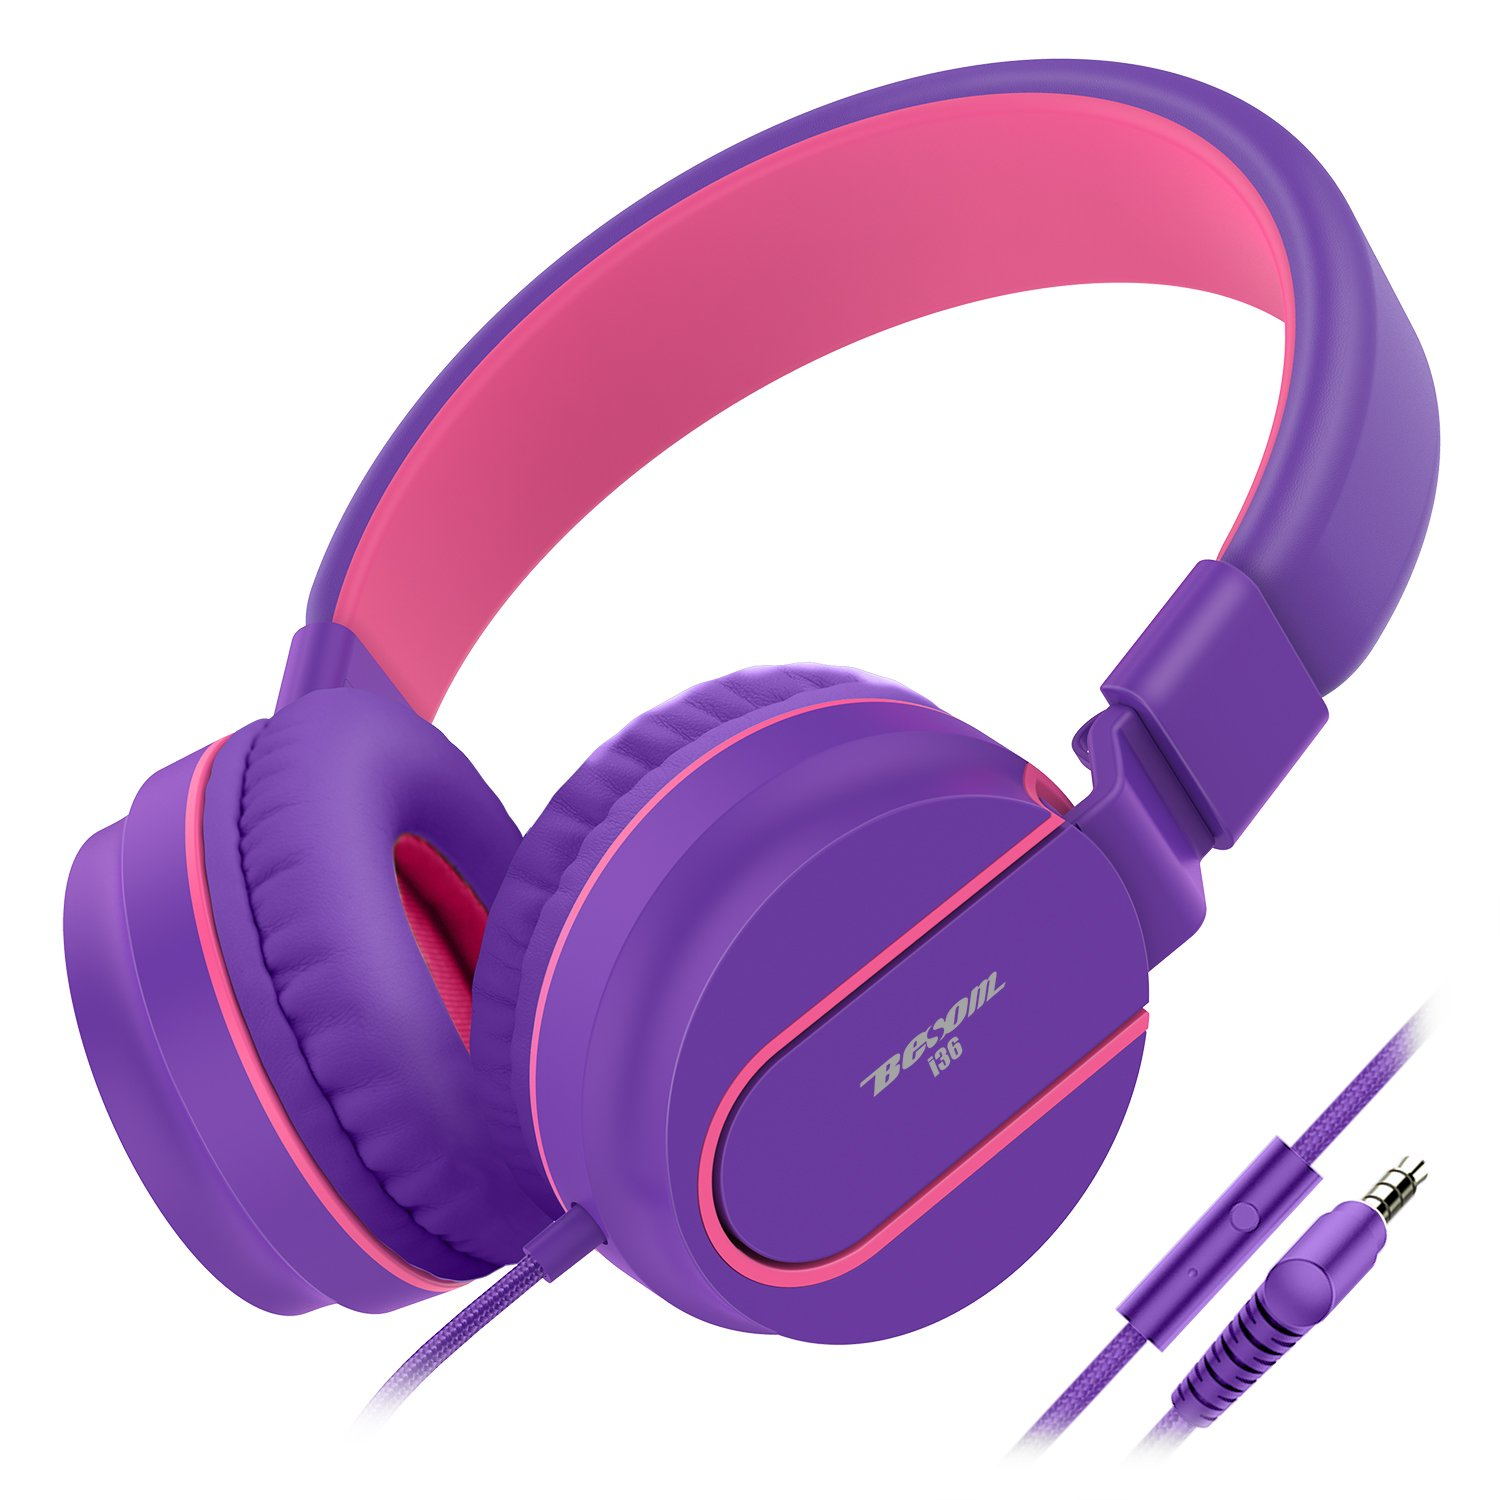 Besom i36 Kids Headphones with Microphone 3.5mm Stereo Adjustable Foldable Headset, Tangle-Free Cord, Wired On-Ear Headphones for Children,Teens,Girls,Boys,Adults-Purple/Pink